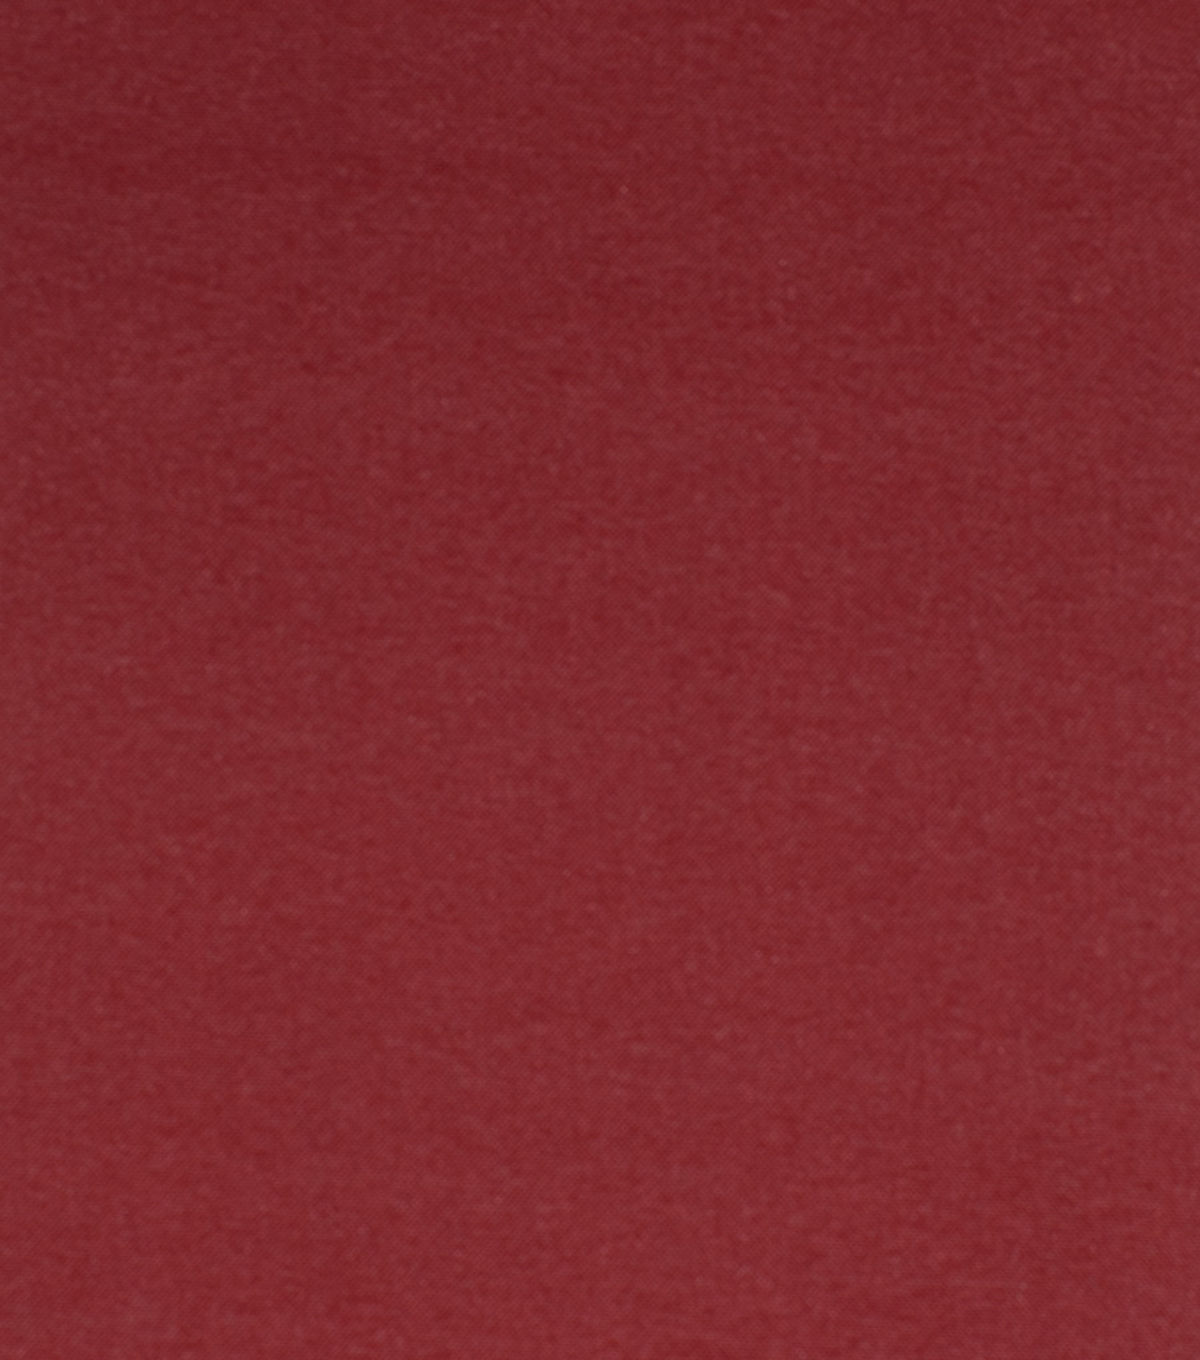 Home Decor 8\u0022x8\u0022 Fabric Swatch-Signature Series Solitaire  Sherry